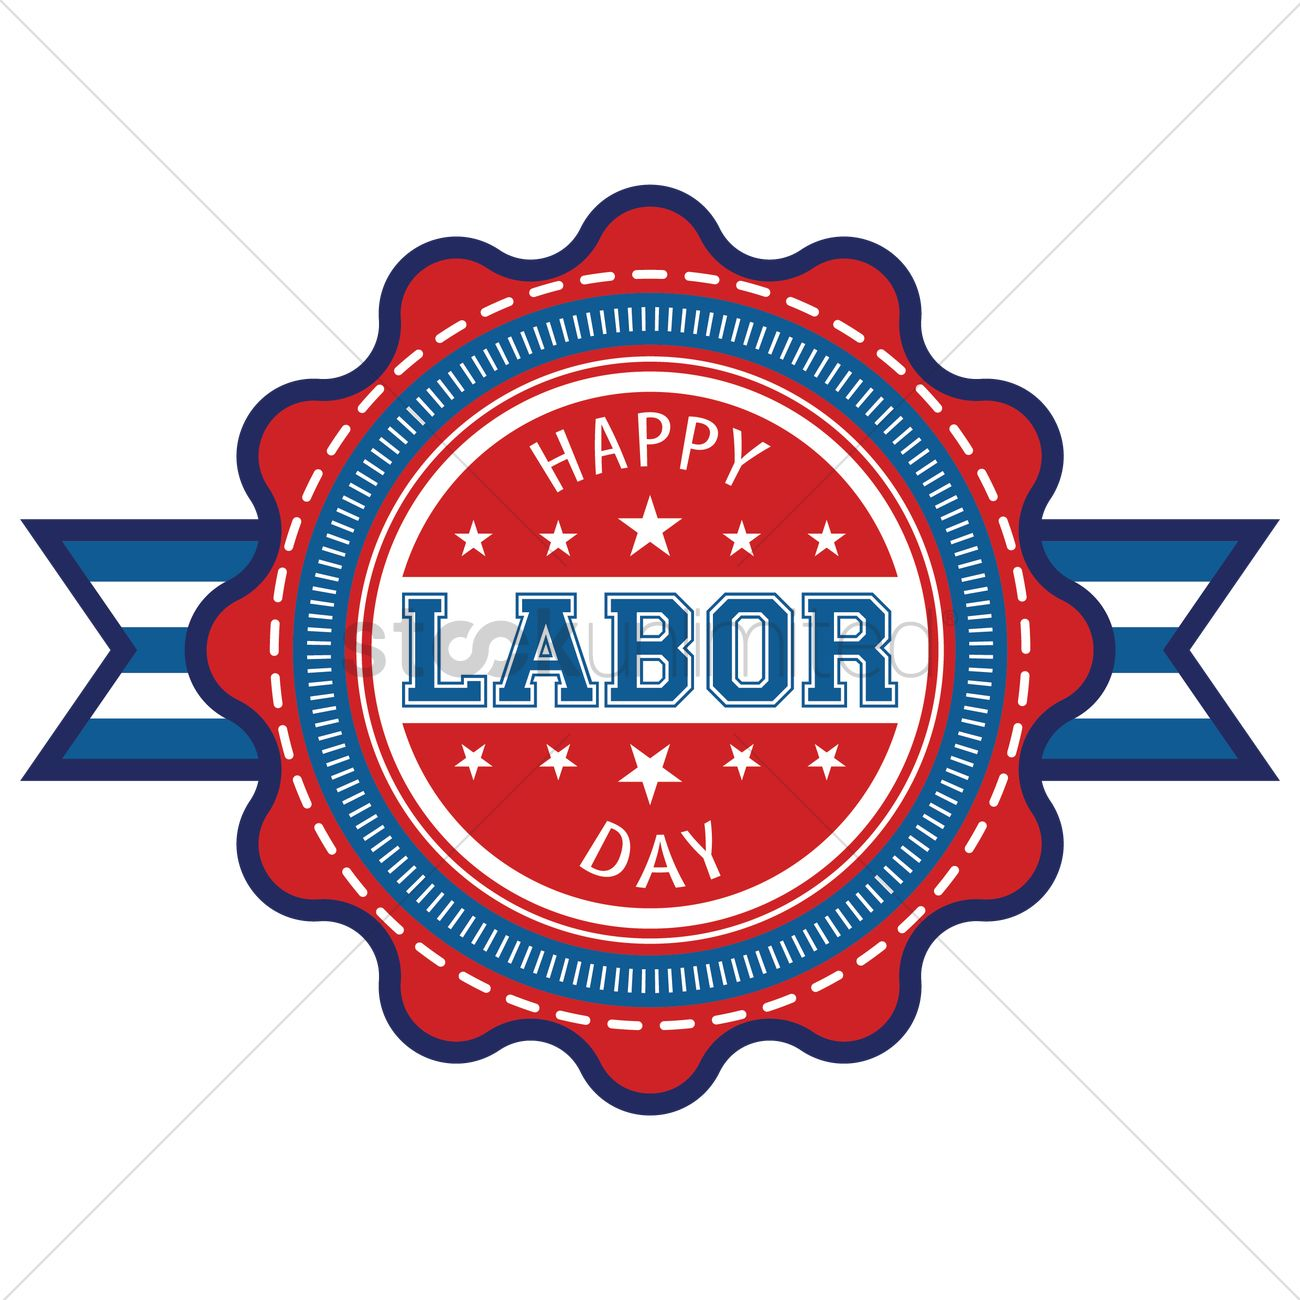 Happy Labor Day Label Vector Image 1557656 Stockunlimited